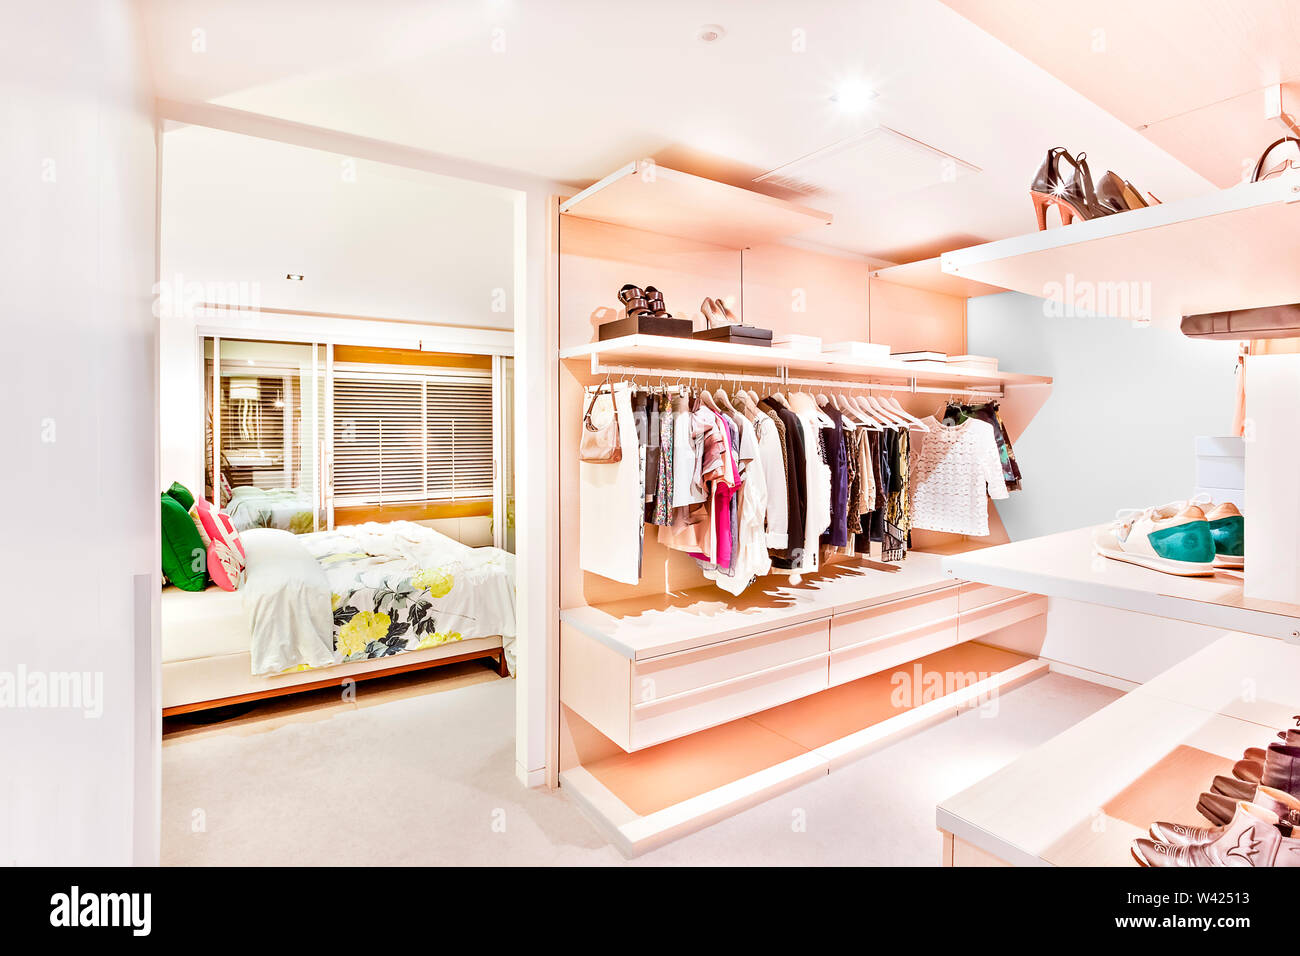 Attrayant Bedroom Attached To The Garment Store Room Of A House With ...